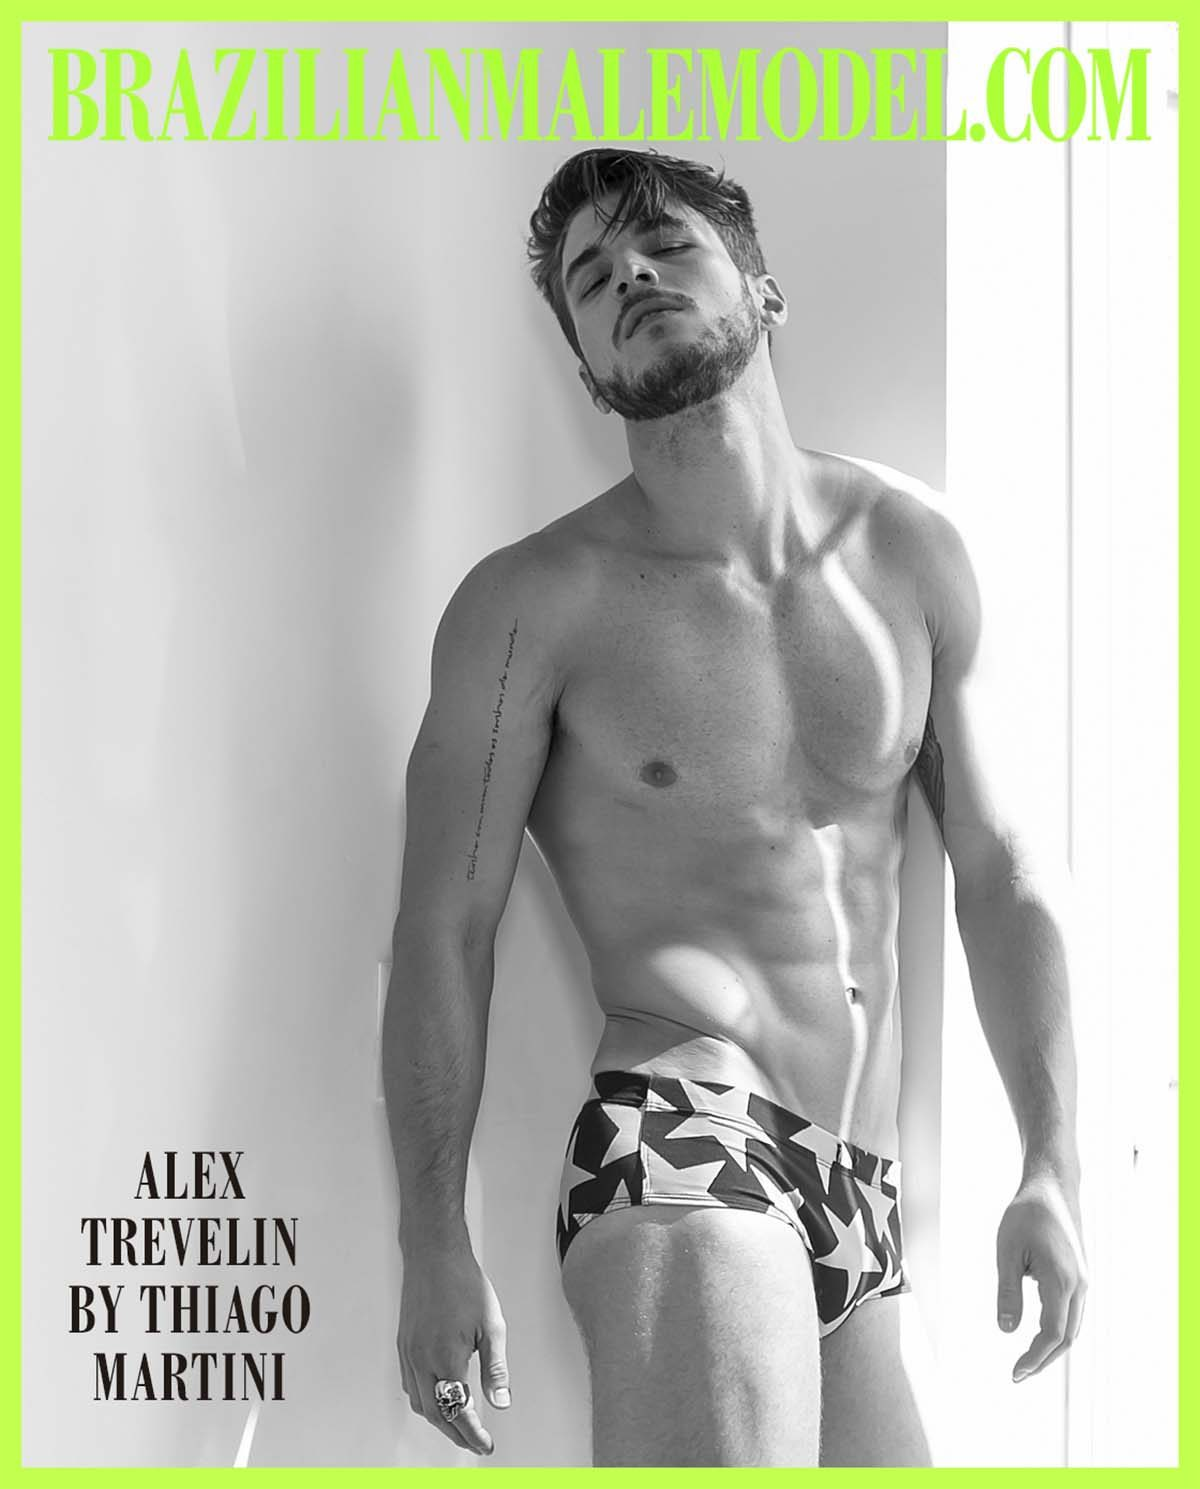 Alex Trevelin by Thiago Martini